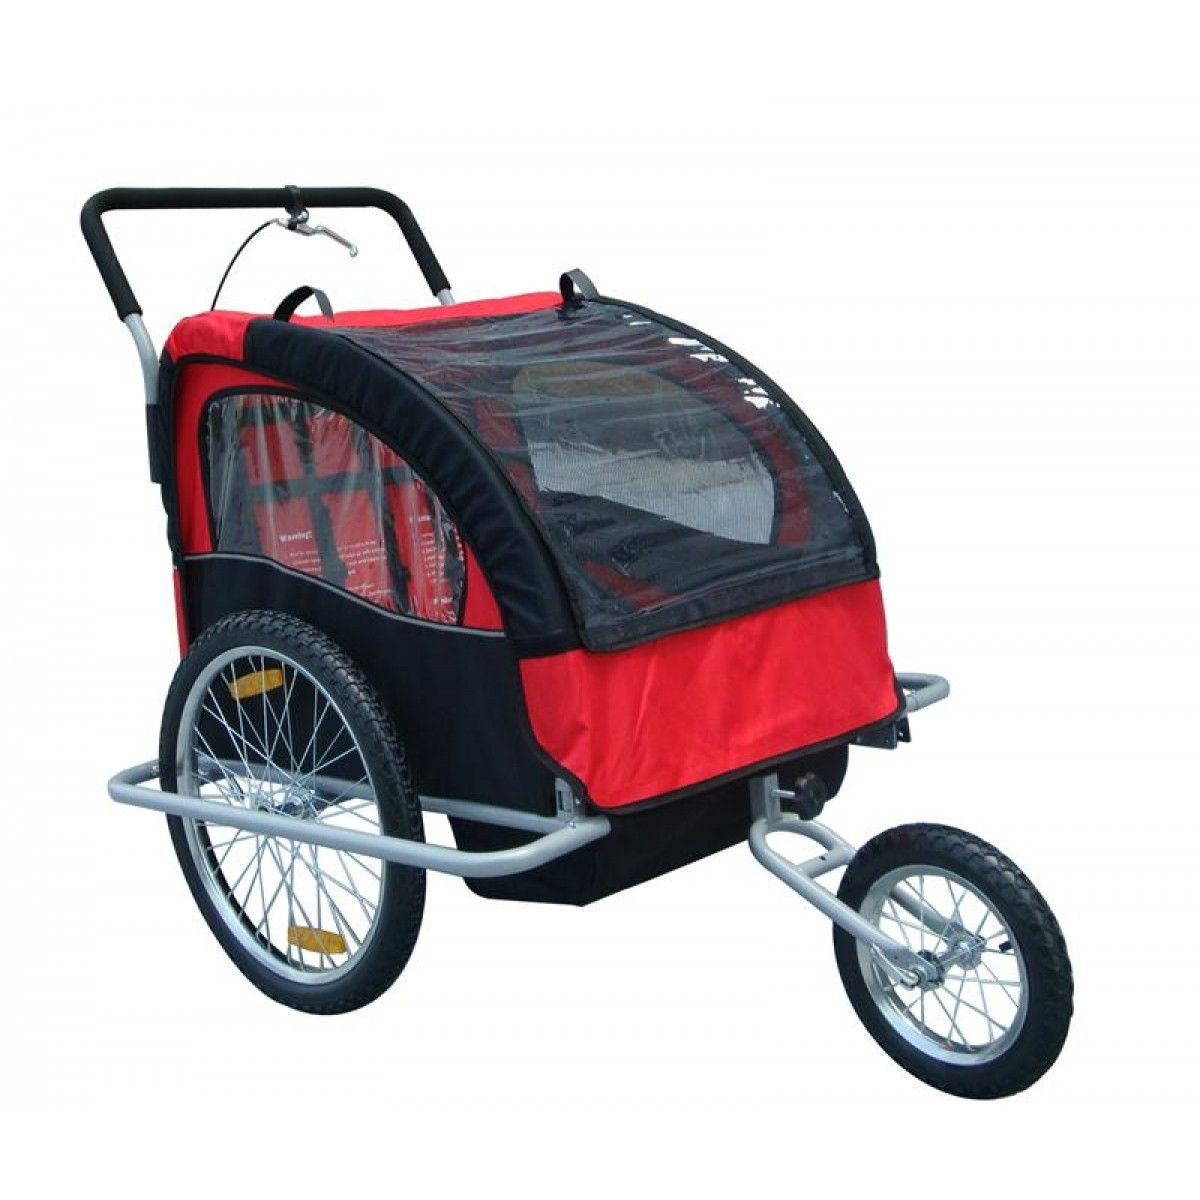 Double Stroller Bike Trailer The Elite 2in1 Double Child